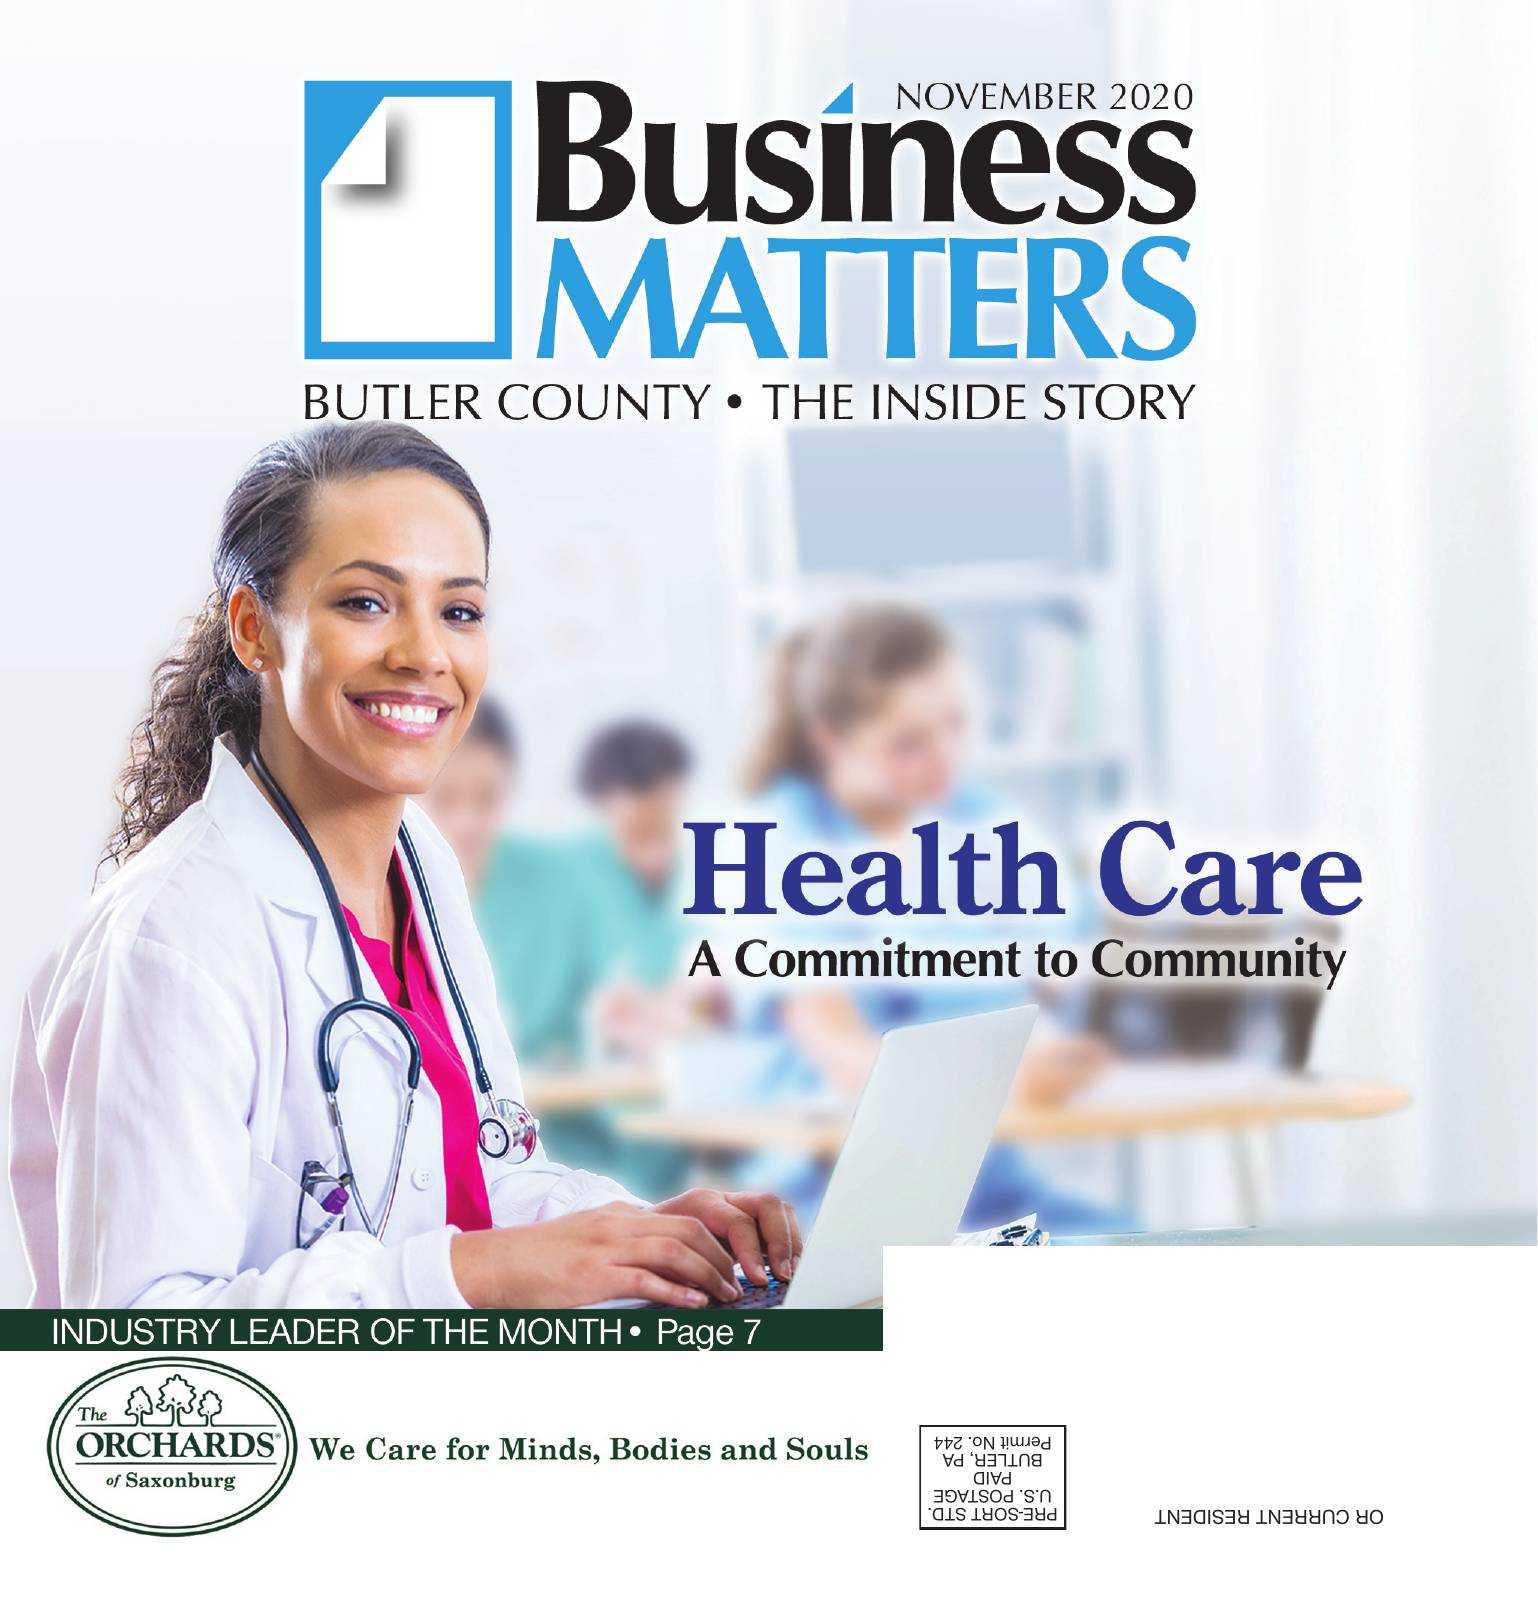 Butler County Business Matters